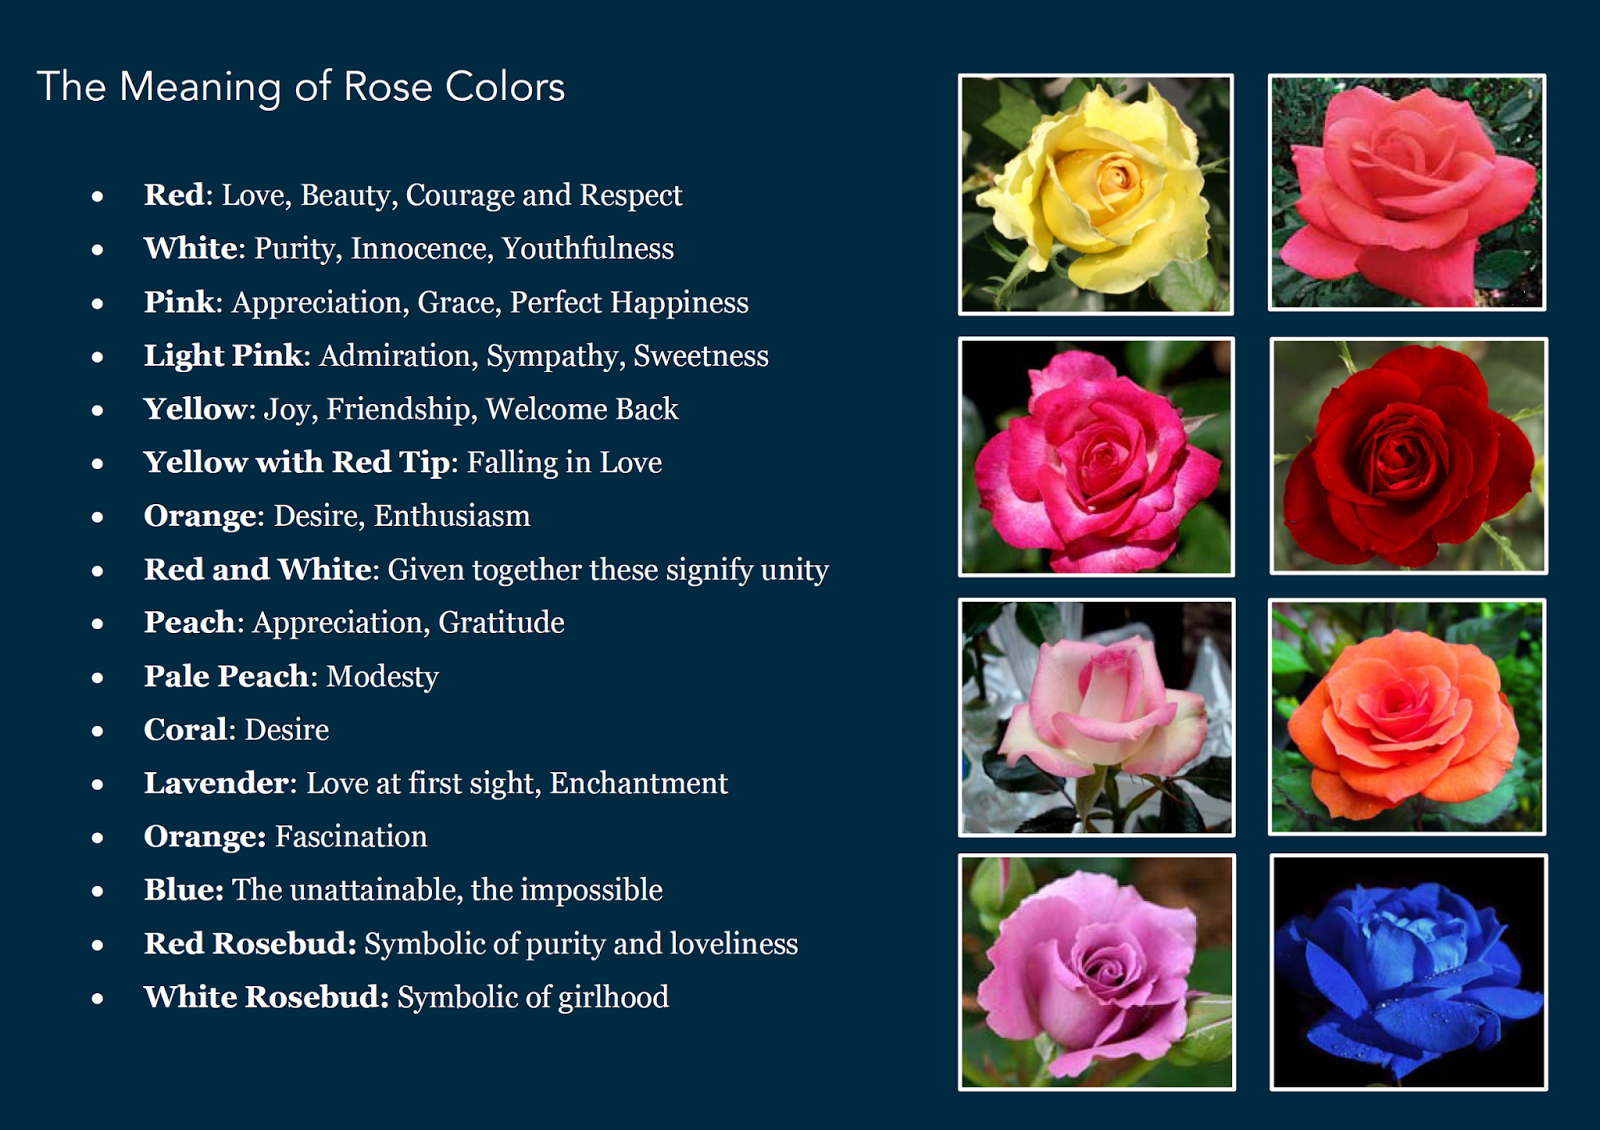 The Symbolic Meanings Also Change With The Color Of The Tulips Description From Pinterest Com I Searched For This Rose Color Meanings Rose Meaning Rose Color